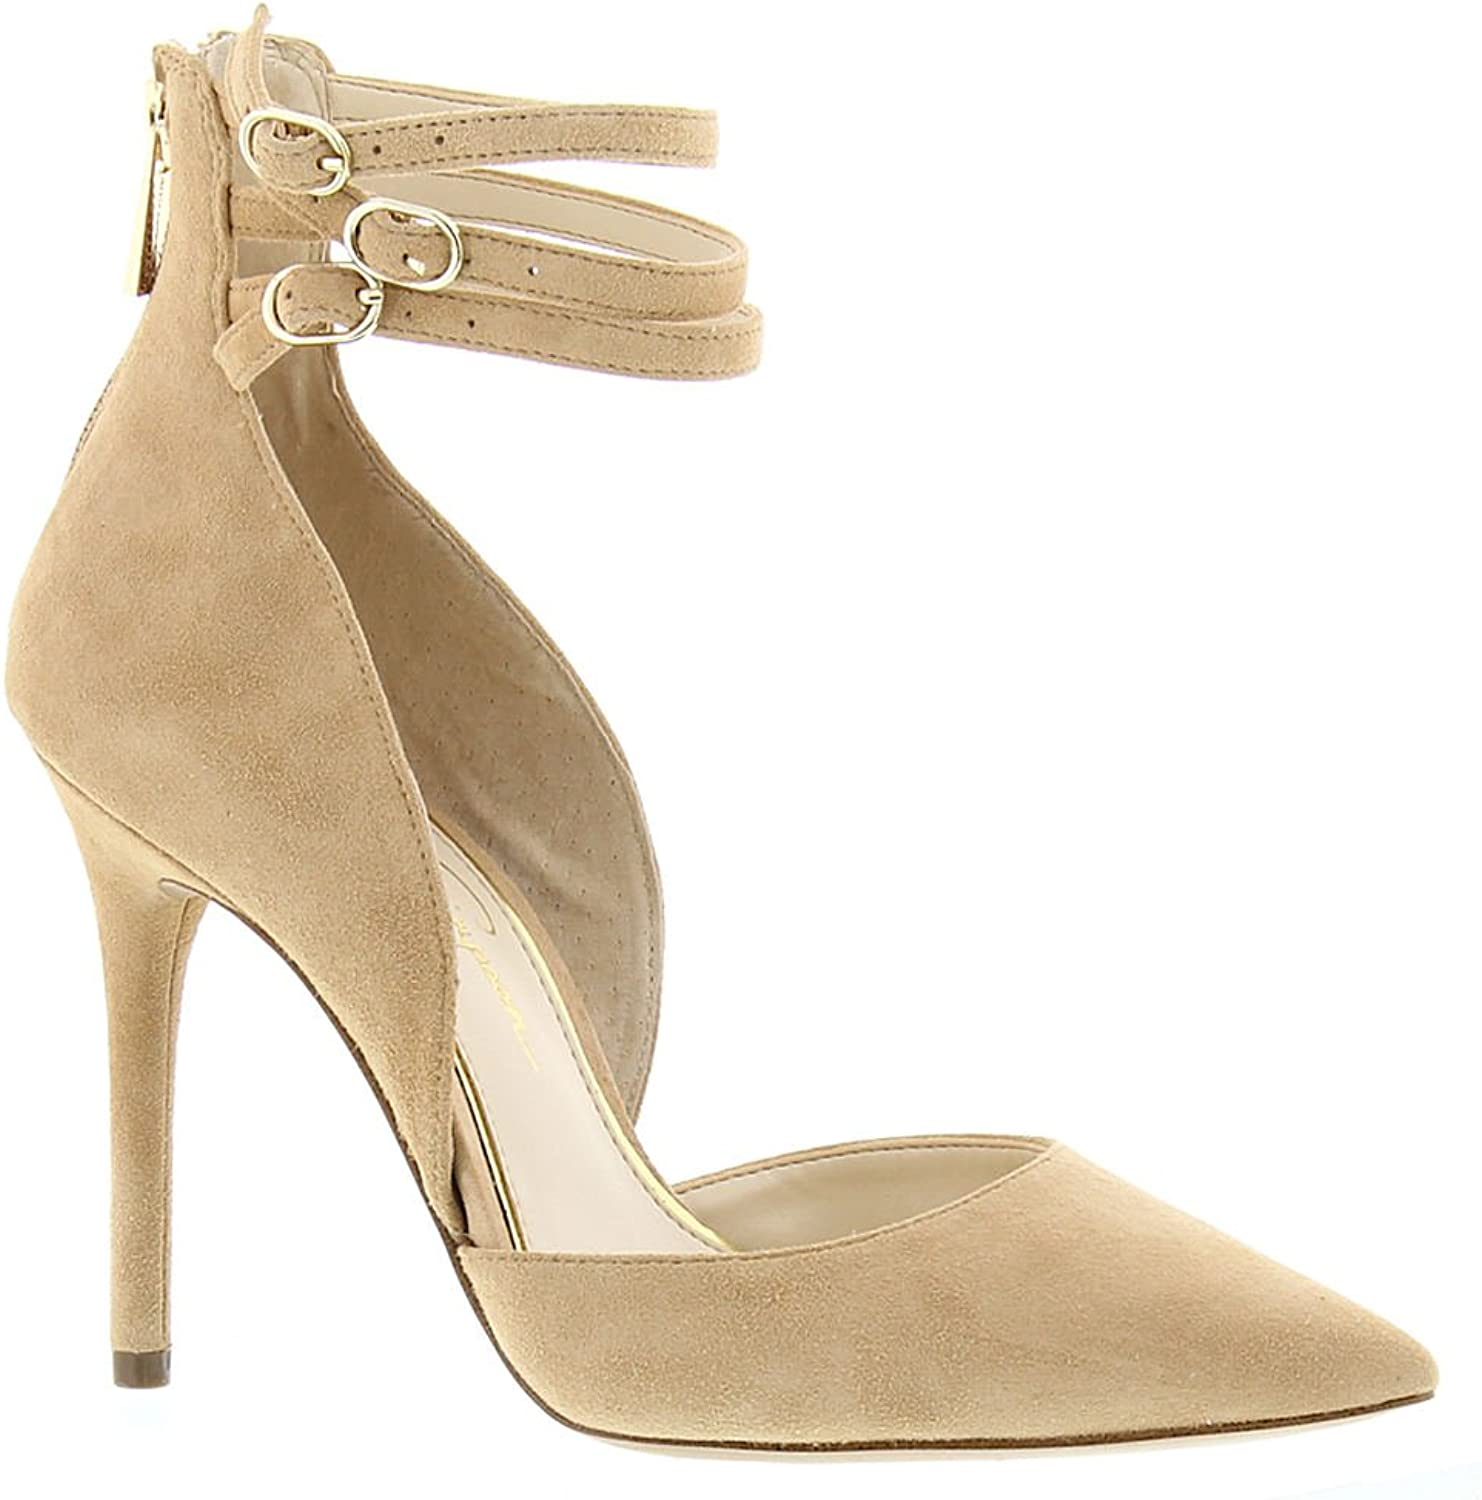 Jessica Simpson Womens Linnee Leather Pointed Toe Ankle Strap, Tan, Size 8.5